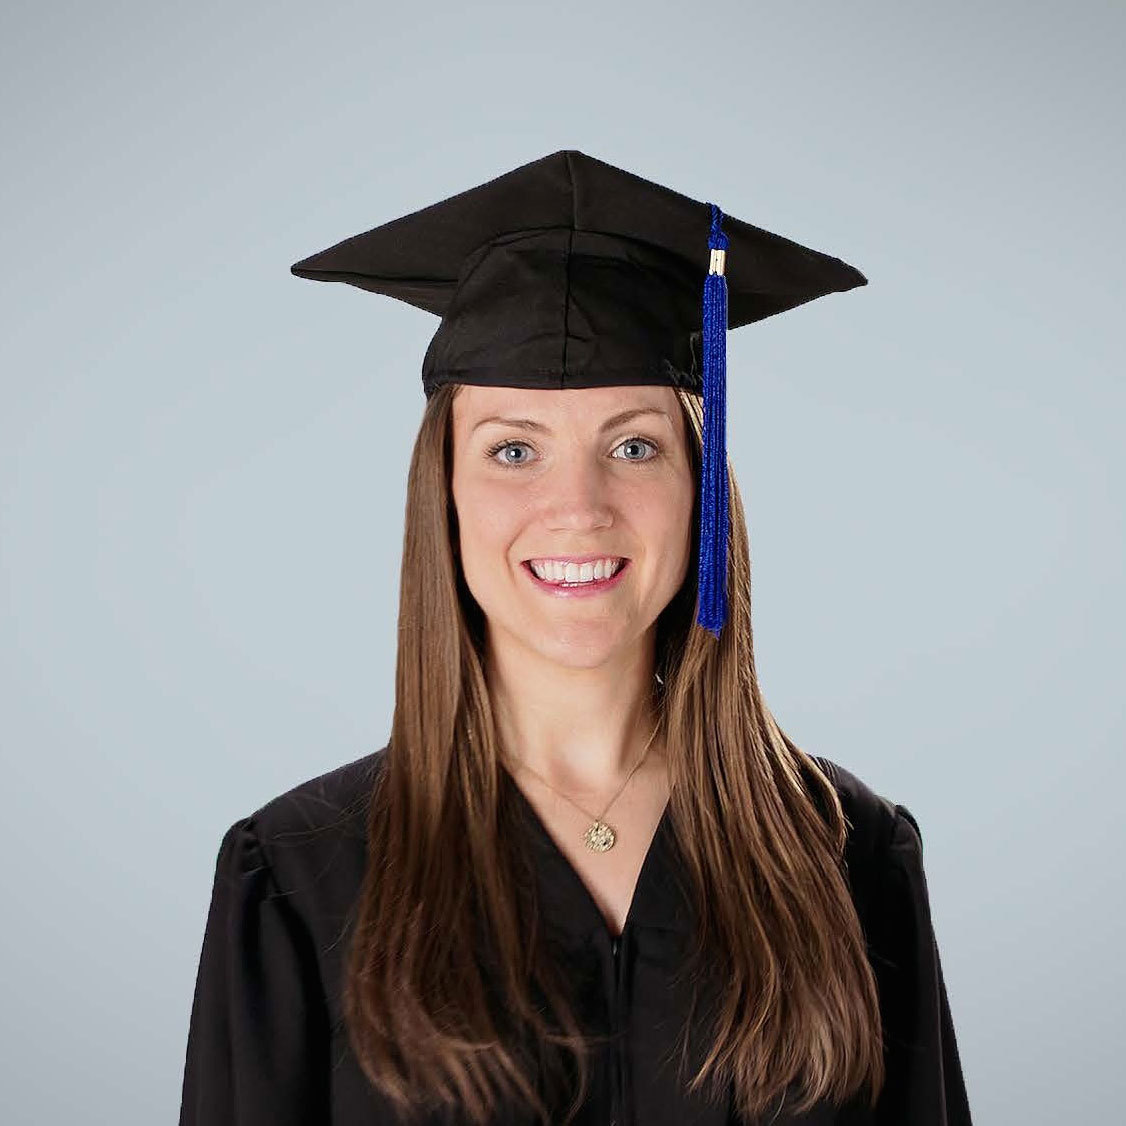 What kind of job can a recent college graduate in IT get?